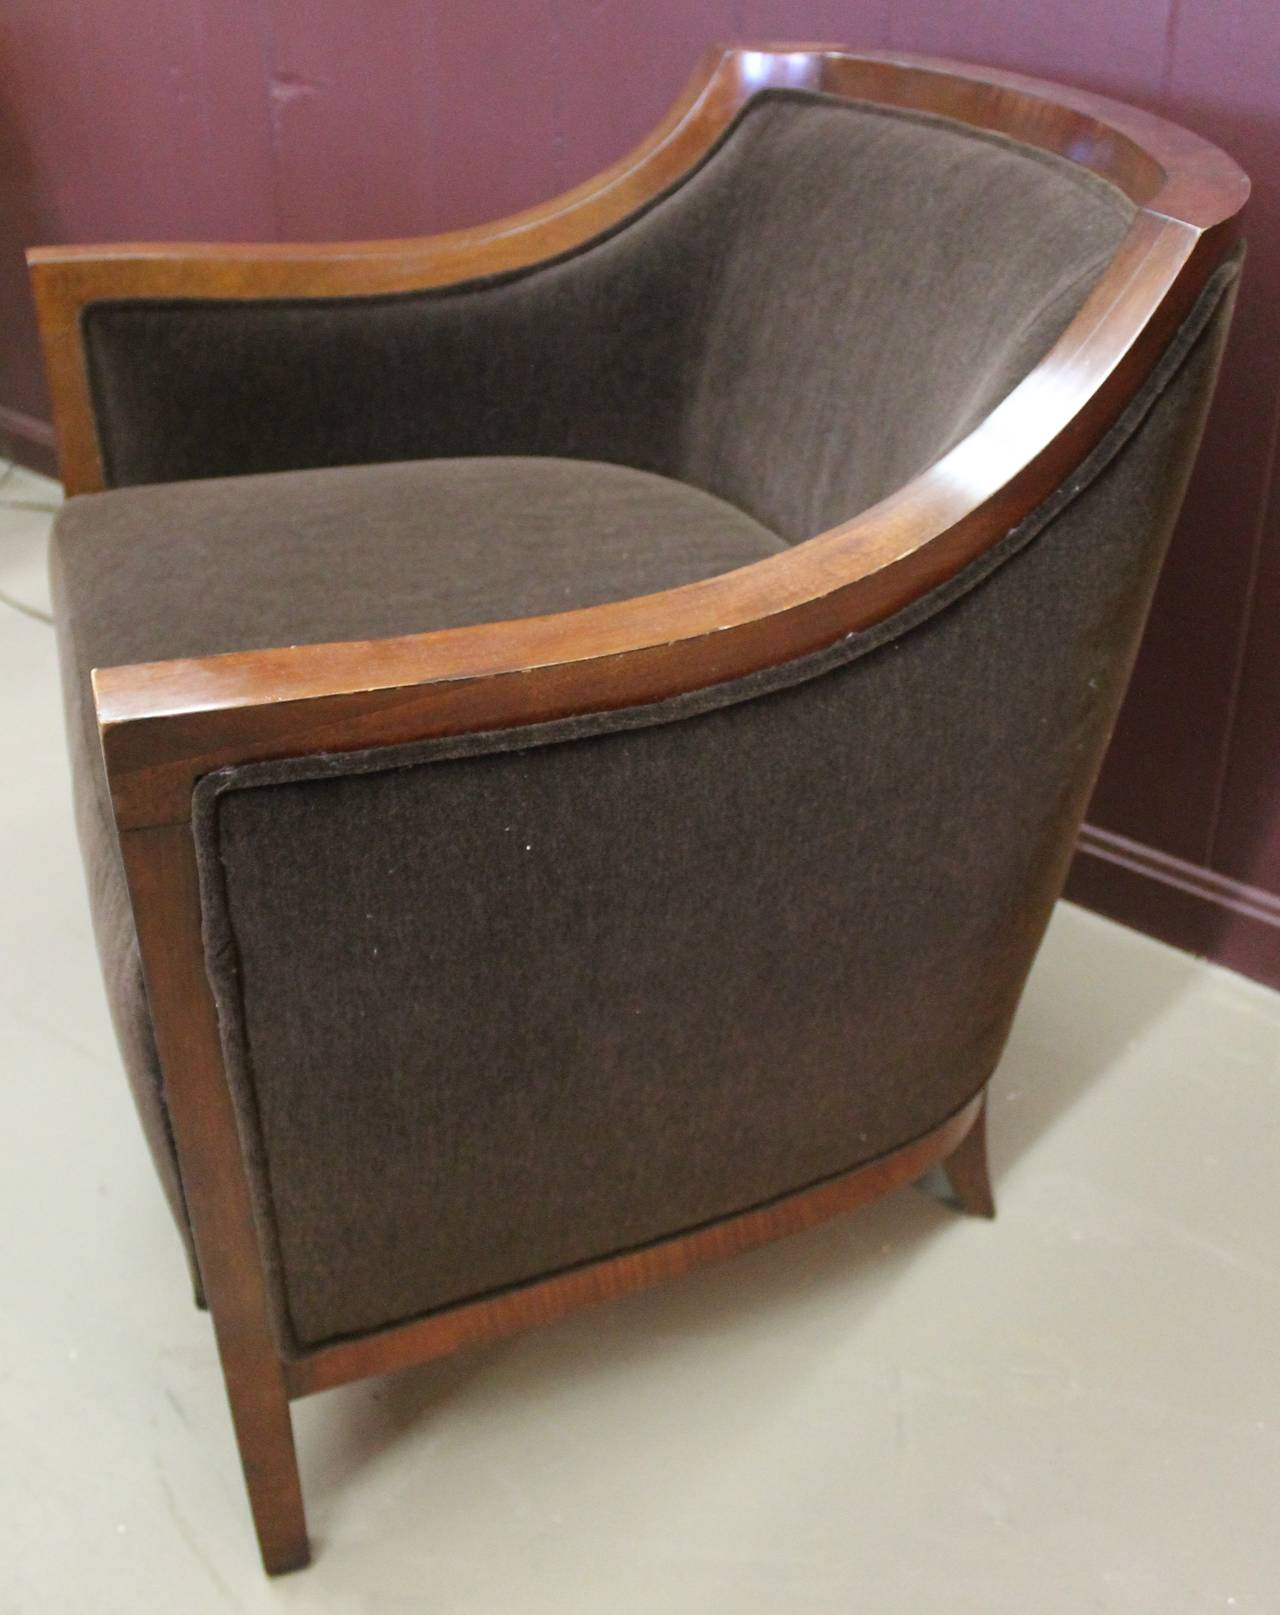 Stunning pair art deco style councill lounge chairs at 1stdibs for Art deco style lounge